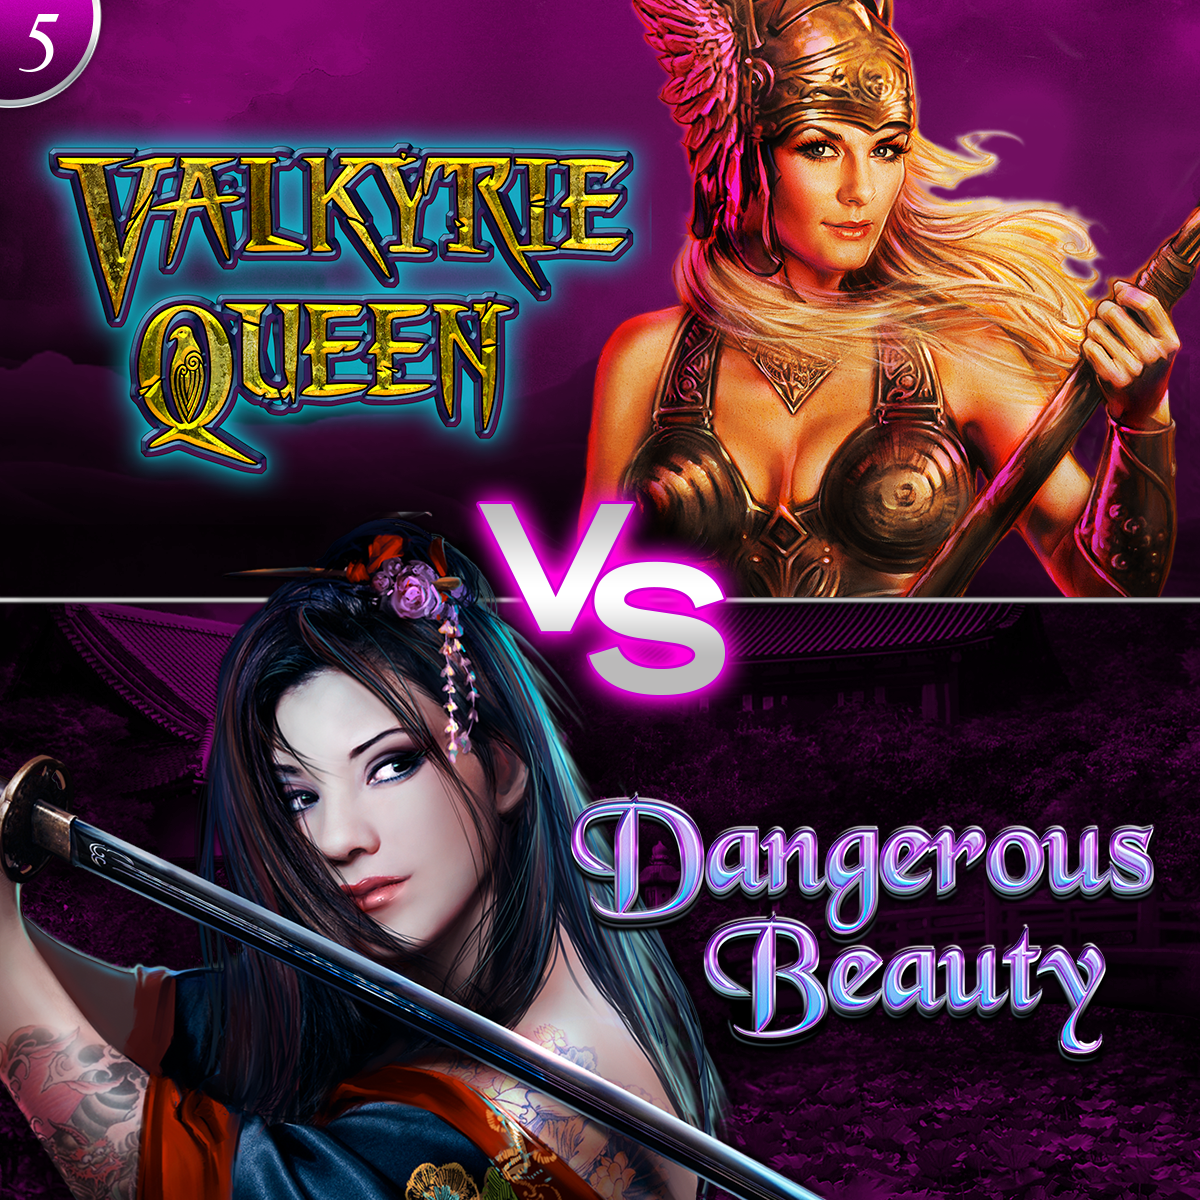 Daily dangerous beauty high5 casino slots blackjack facebook